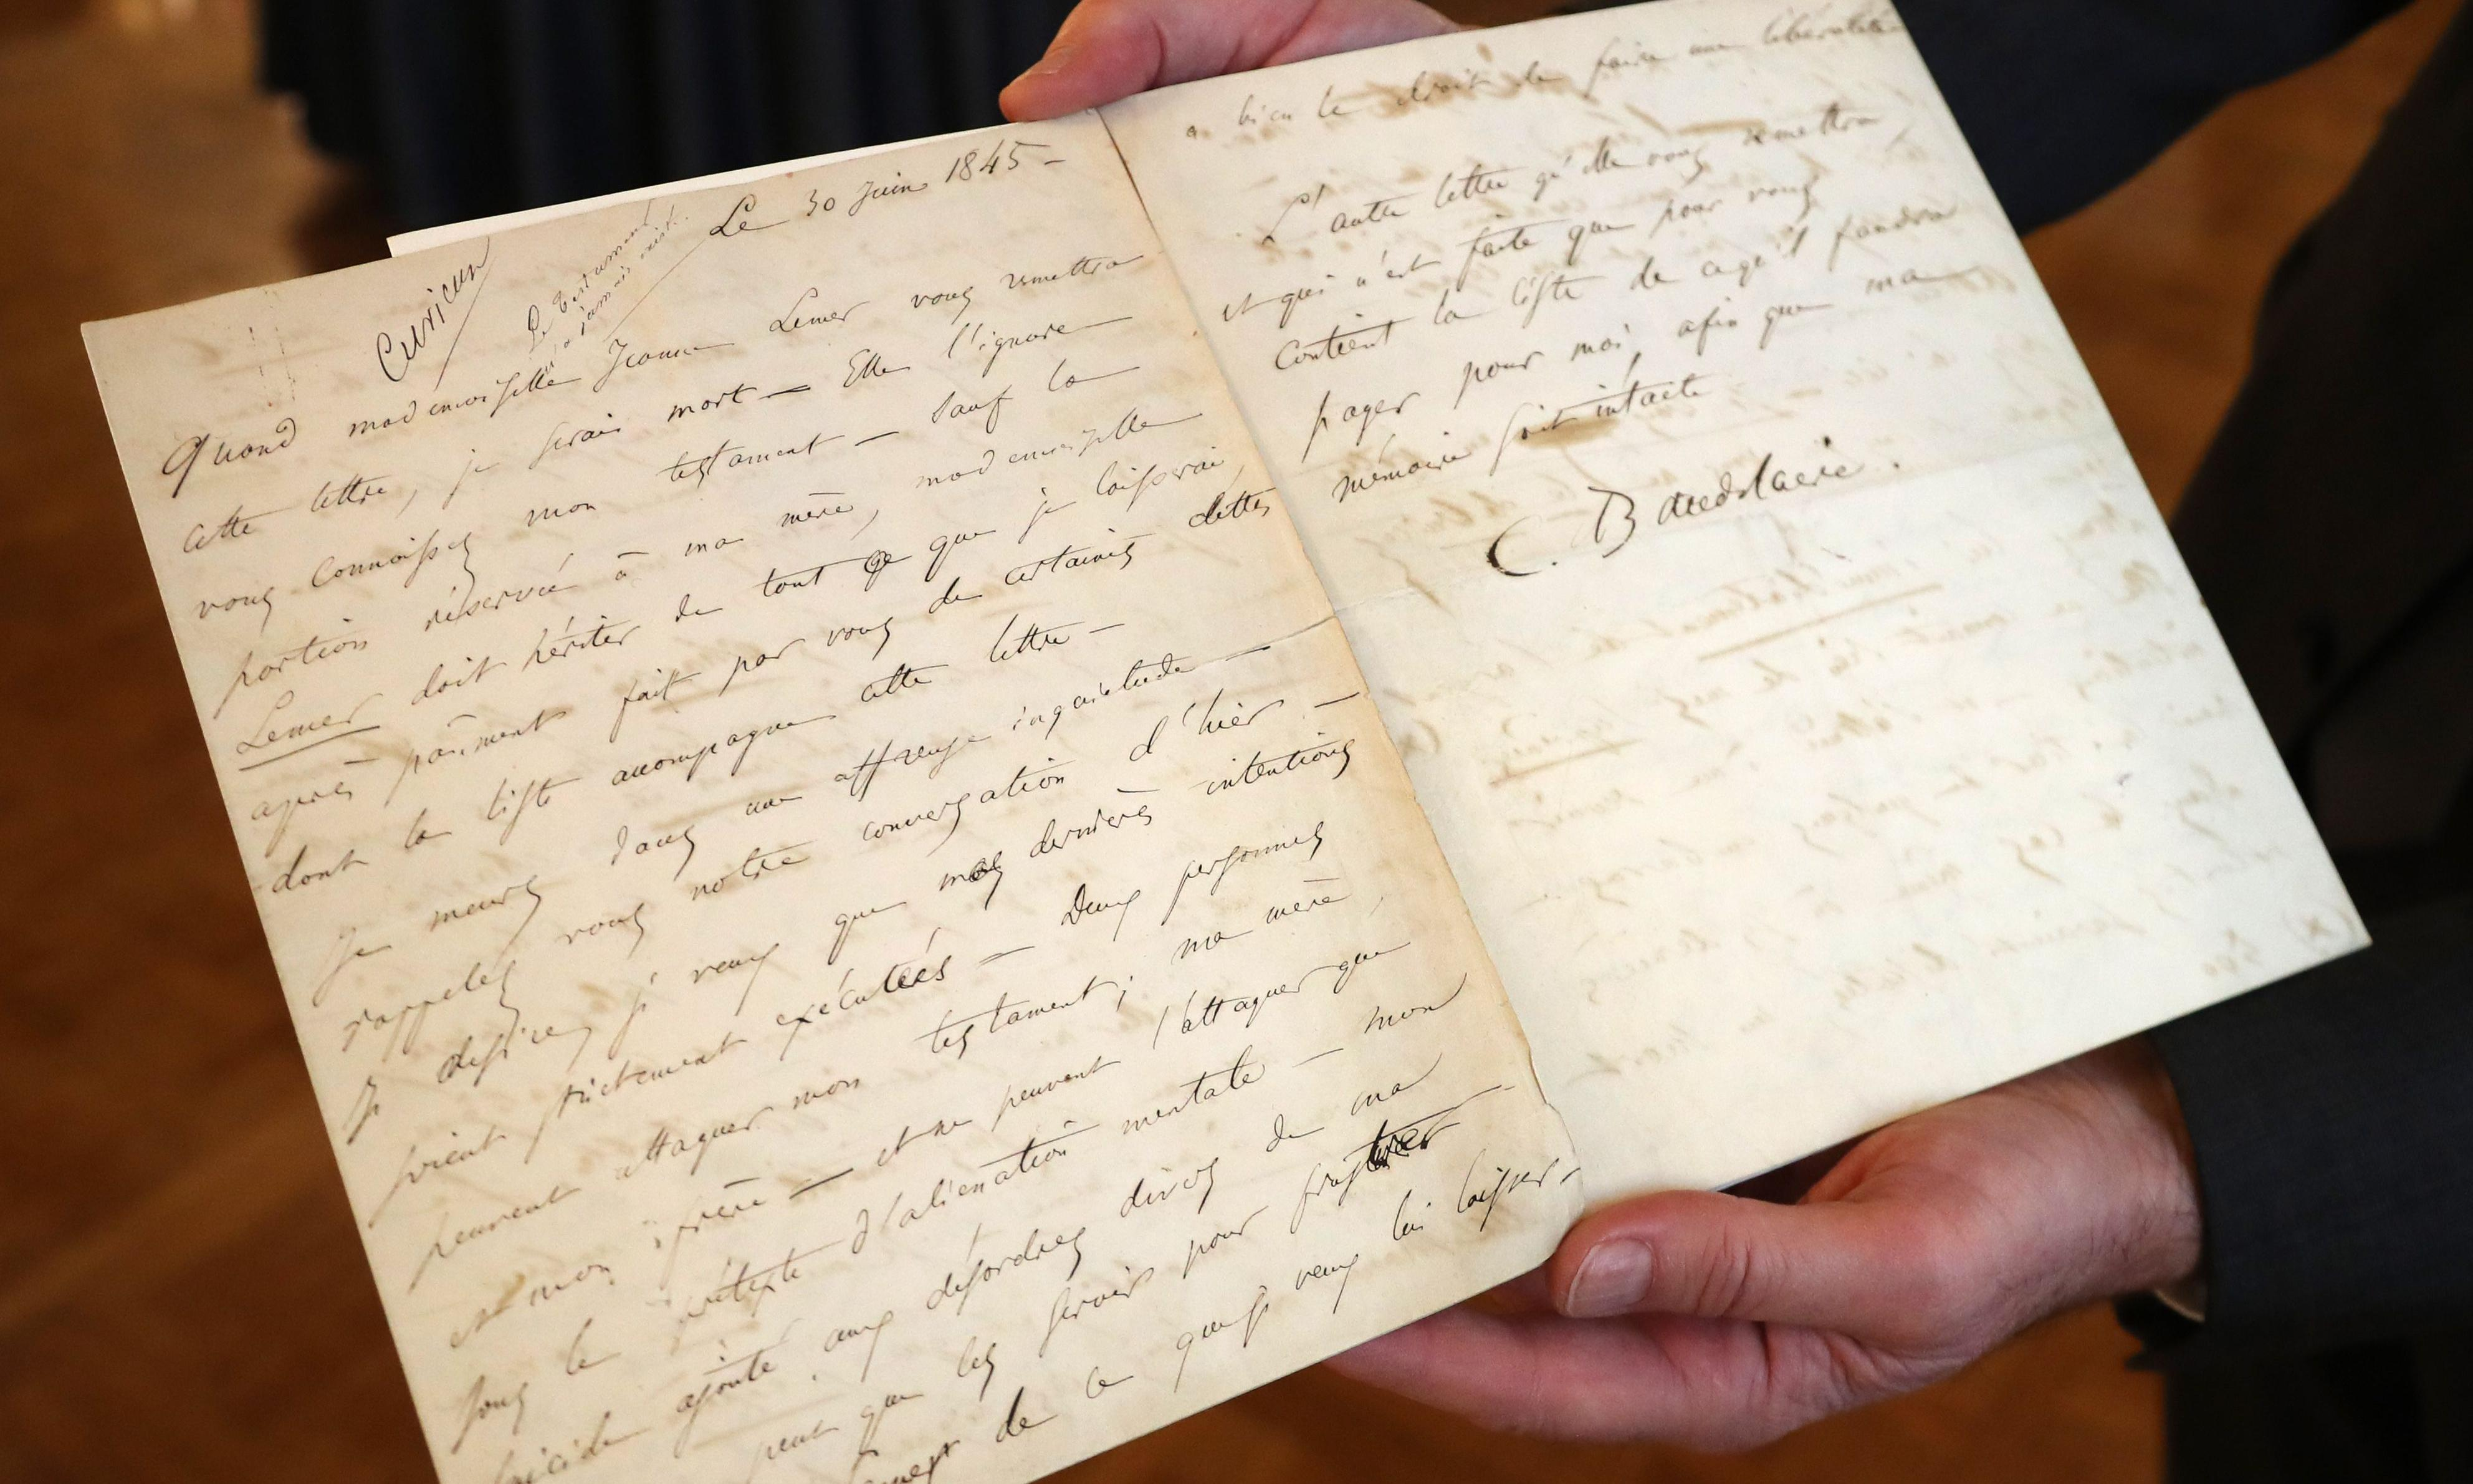 Baudelaire suicide letter fetches three times estimated price at auction